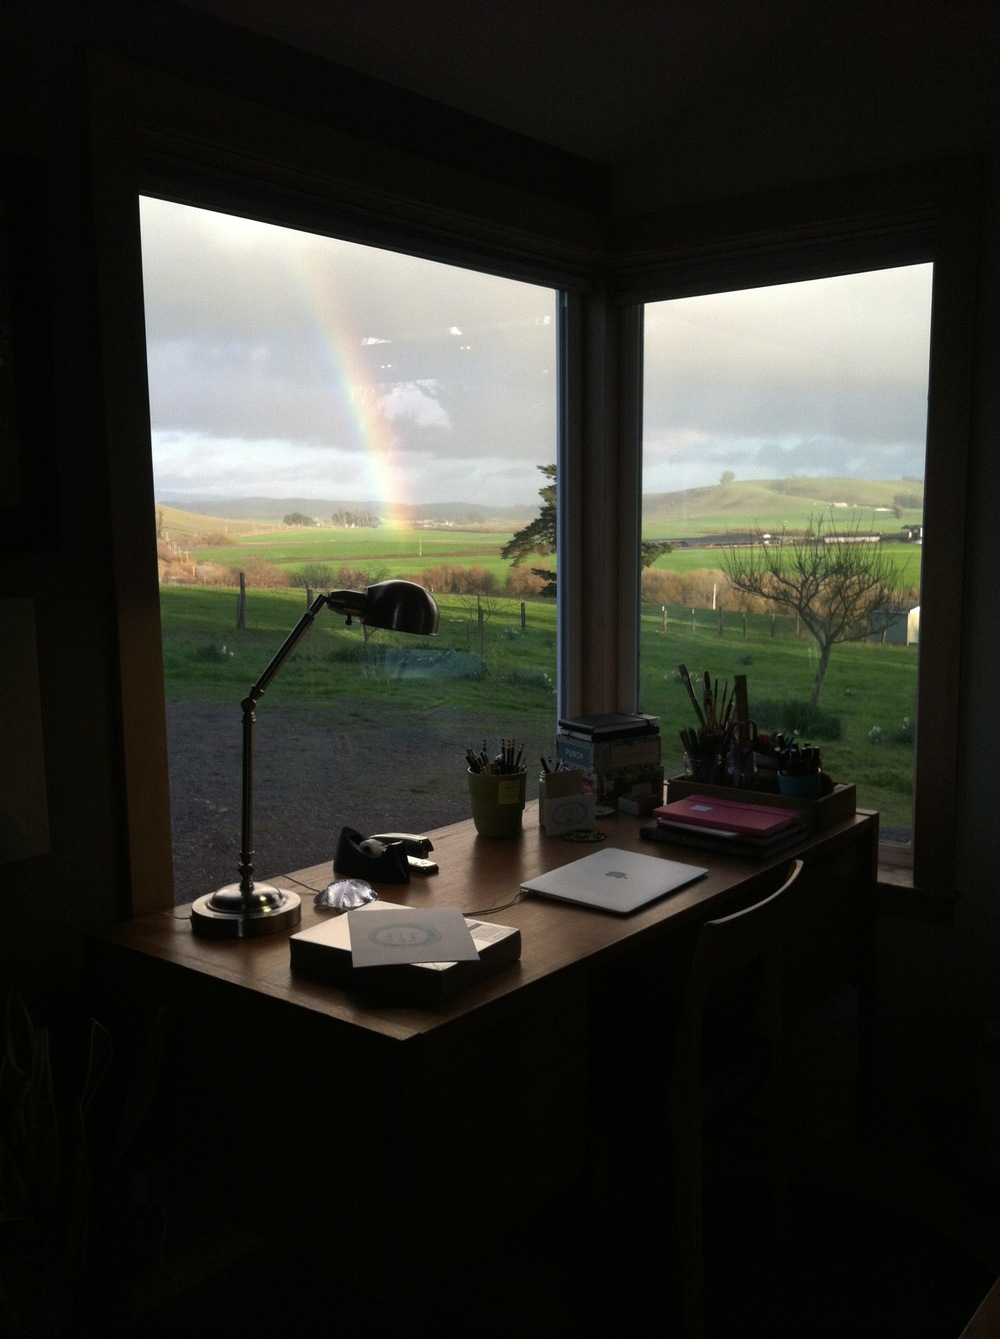 My desk in the corner of the living room + nature's art of a rainbow outside